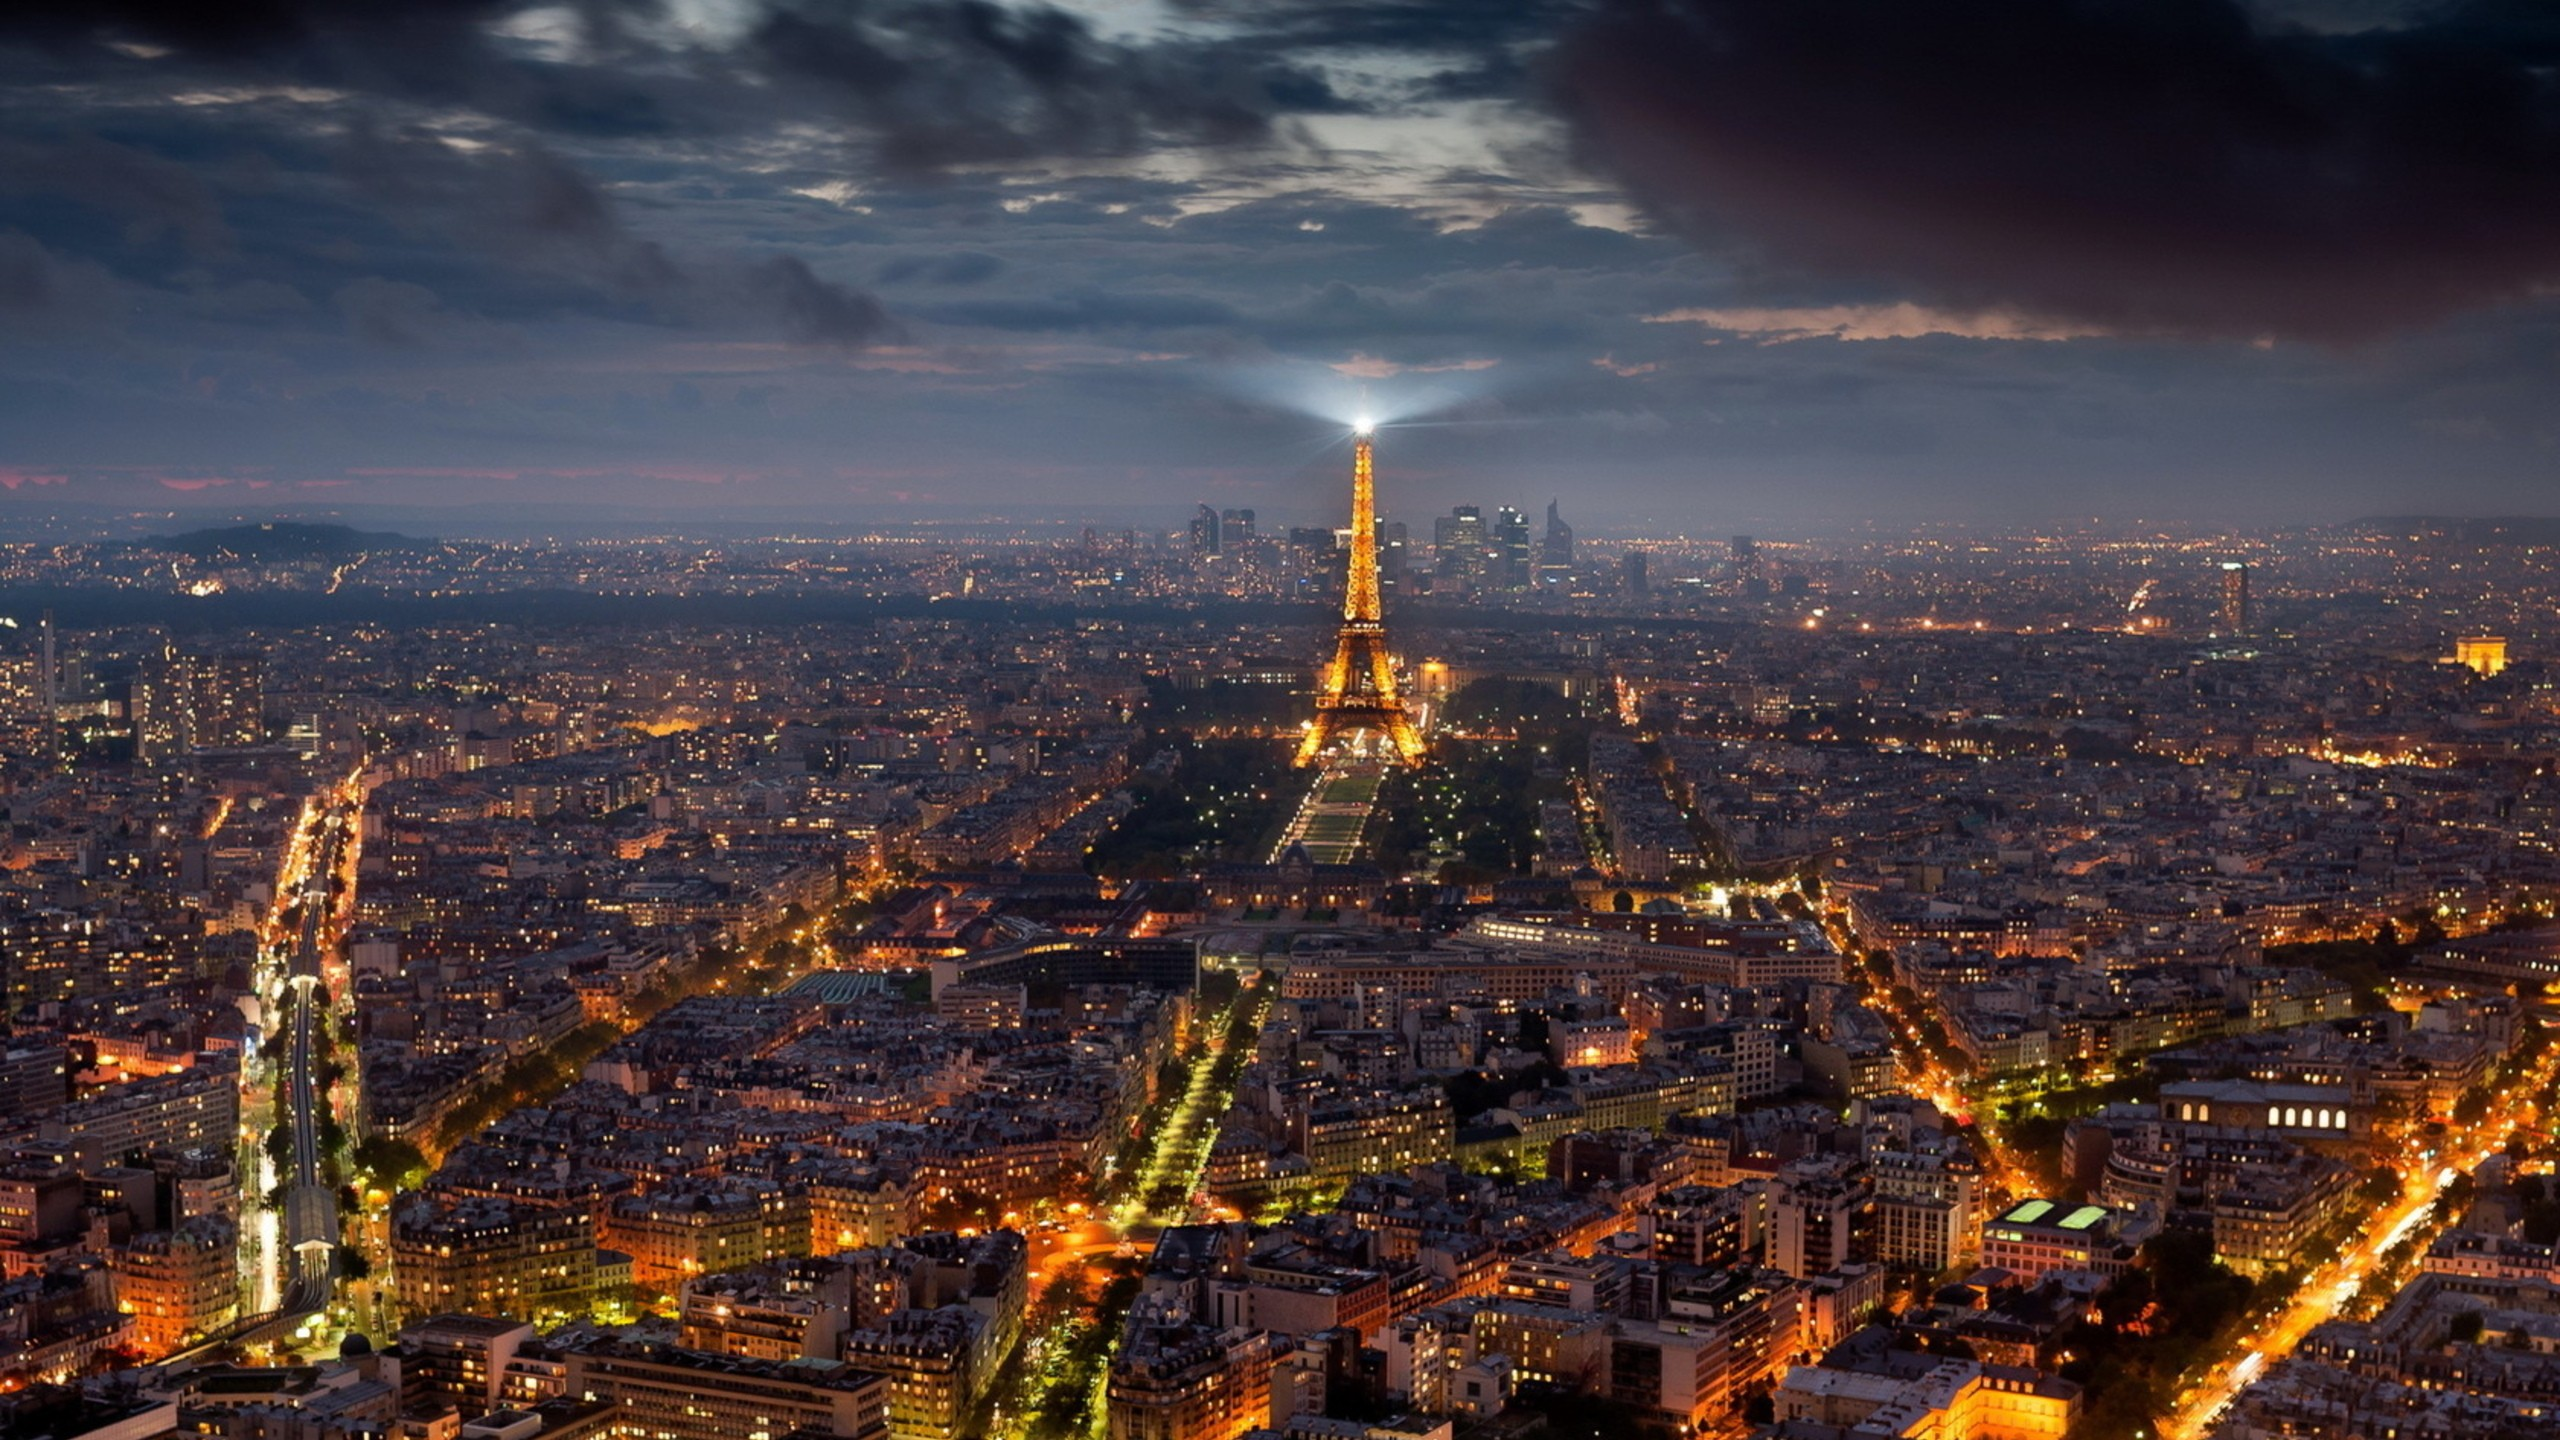 2560x1440 paris night cityscape desktop pc and mac wallpaper